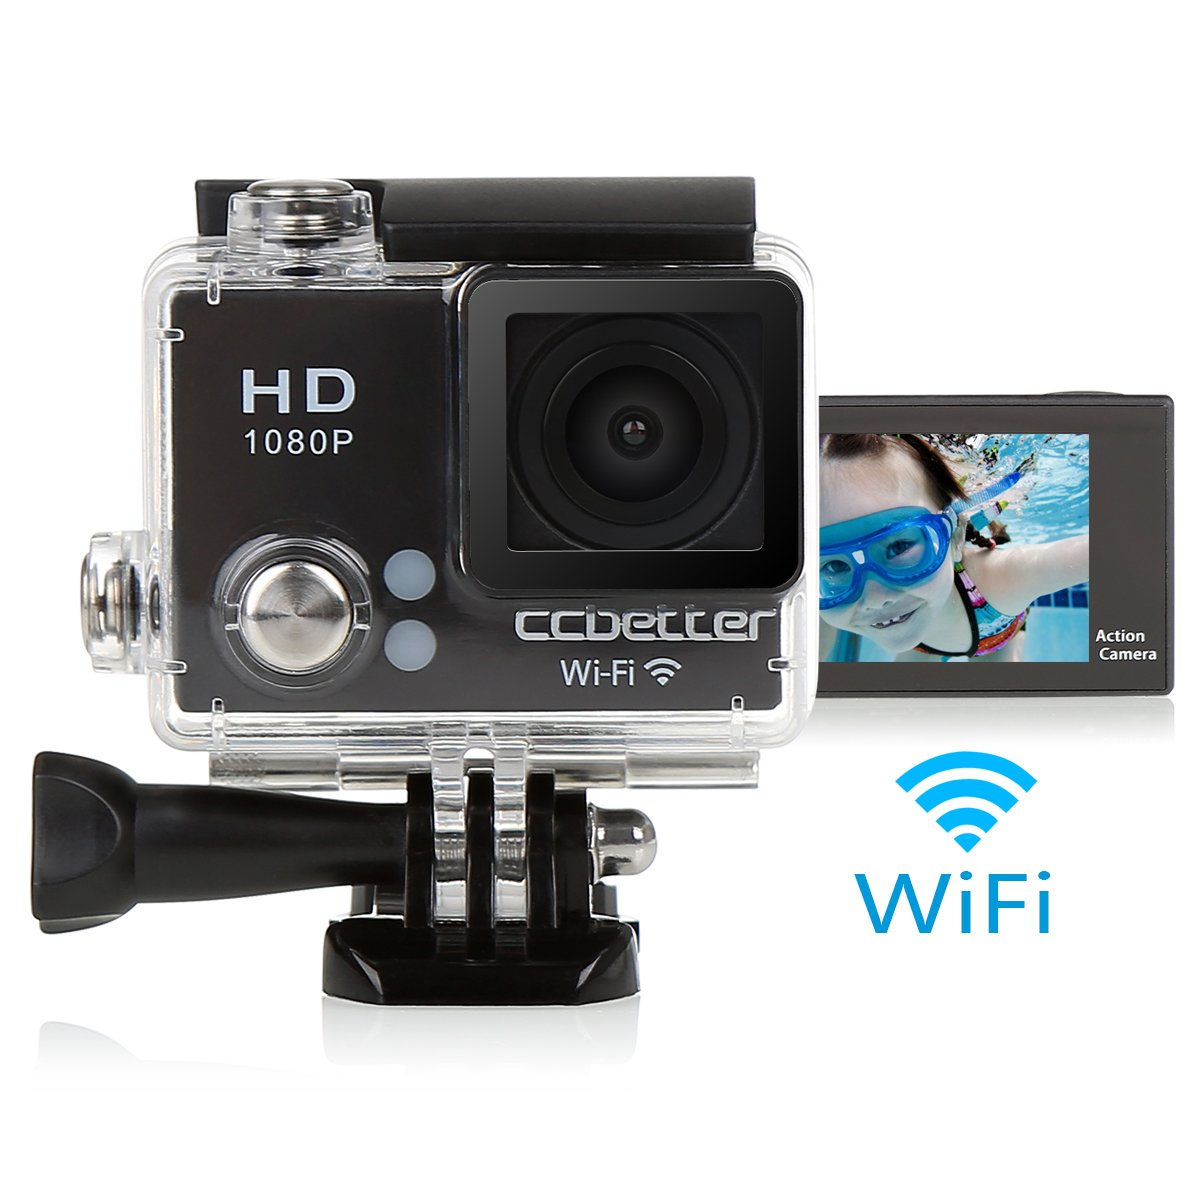 CCbetter ® 2.0 Inch Screen Wifi Hd 12mp 1080p Sports Action Camera 120 Degree Waterproof Diving Camcorder Skating Diving Video Dvr Recorder Color Black